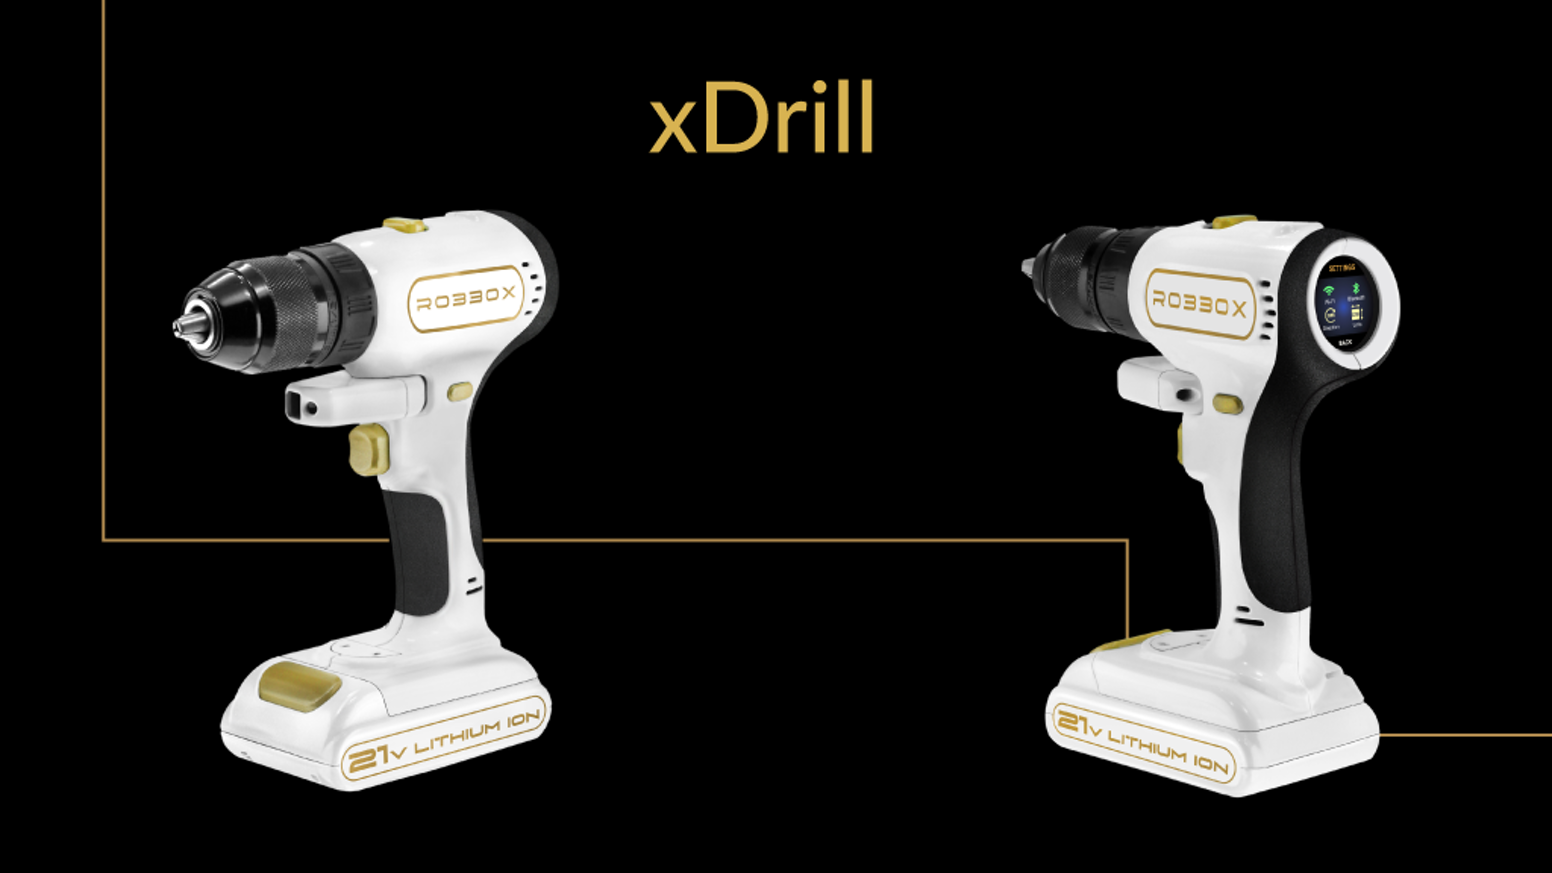 A digital smart drill complete with laser measuring, digital leveling, intelligent speed/torque, and a touch screen